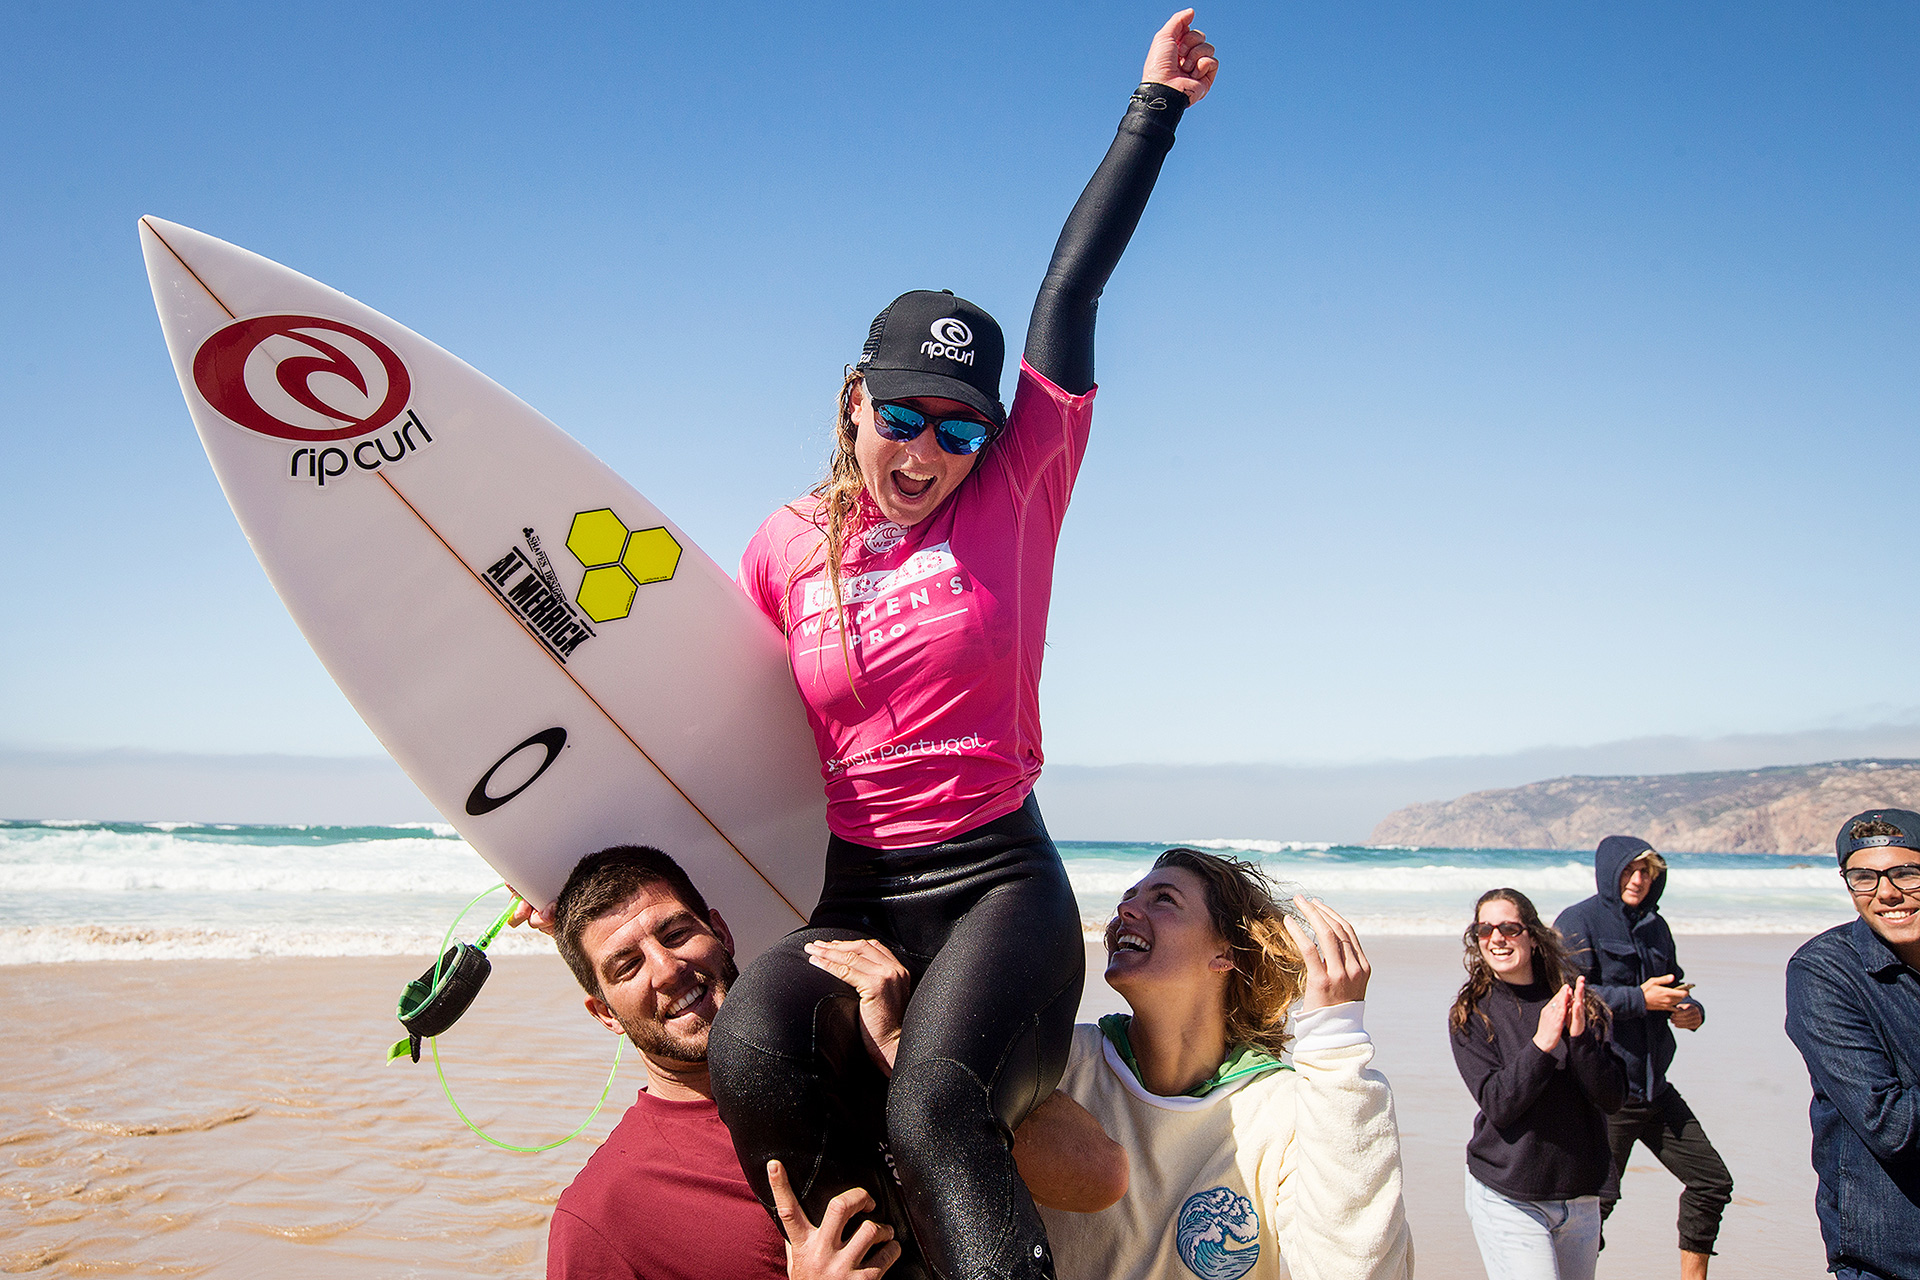 Nikki Van Dijk estreou-se nas vitórias - Photo by Masurel / WSL